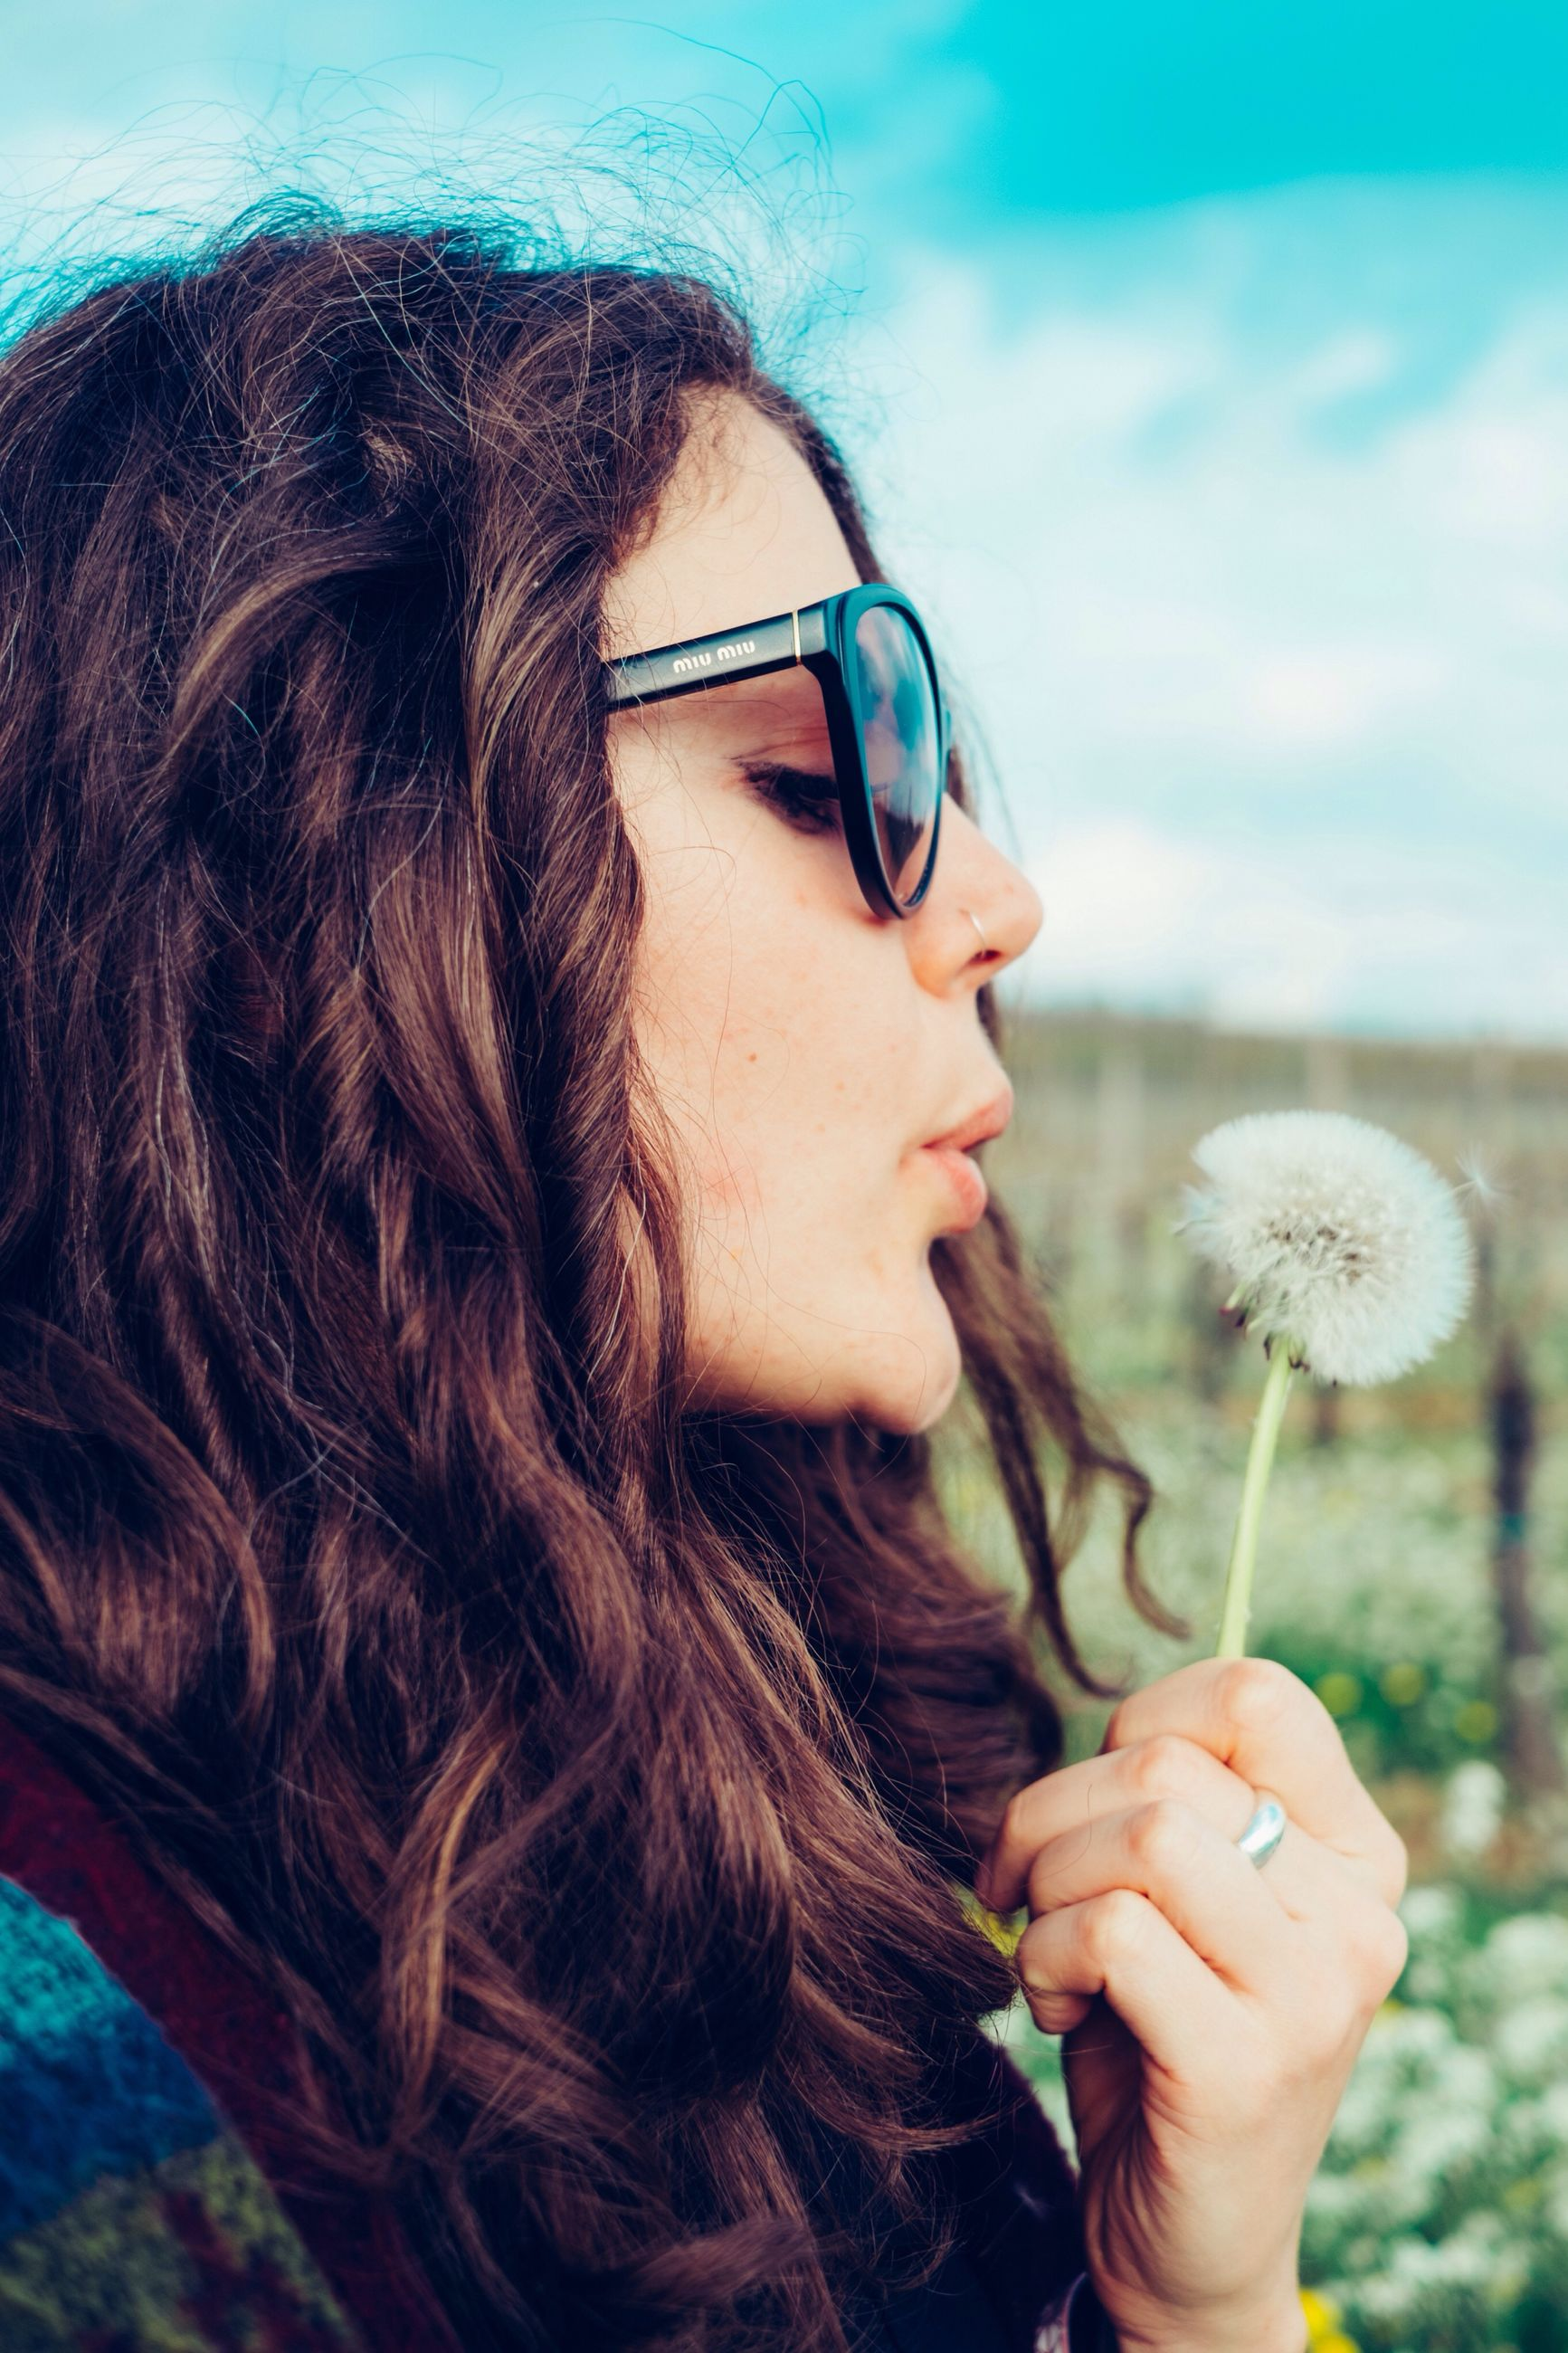 young adult, person, headshot, lifestyles, young women, long hair, leisure activity, focus on foreground, holding, front view, close-up, portrait, sunglasses, looking at camera, human face, head and shoulders